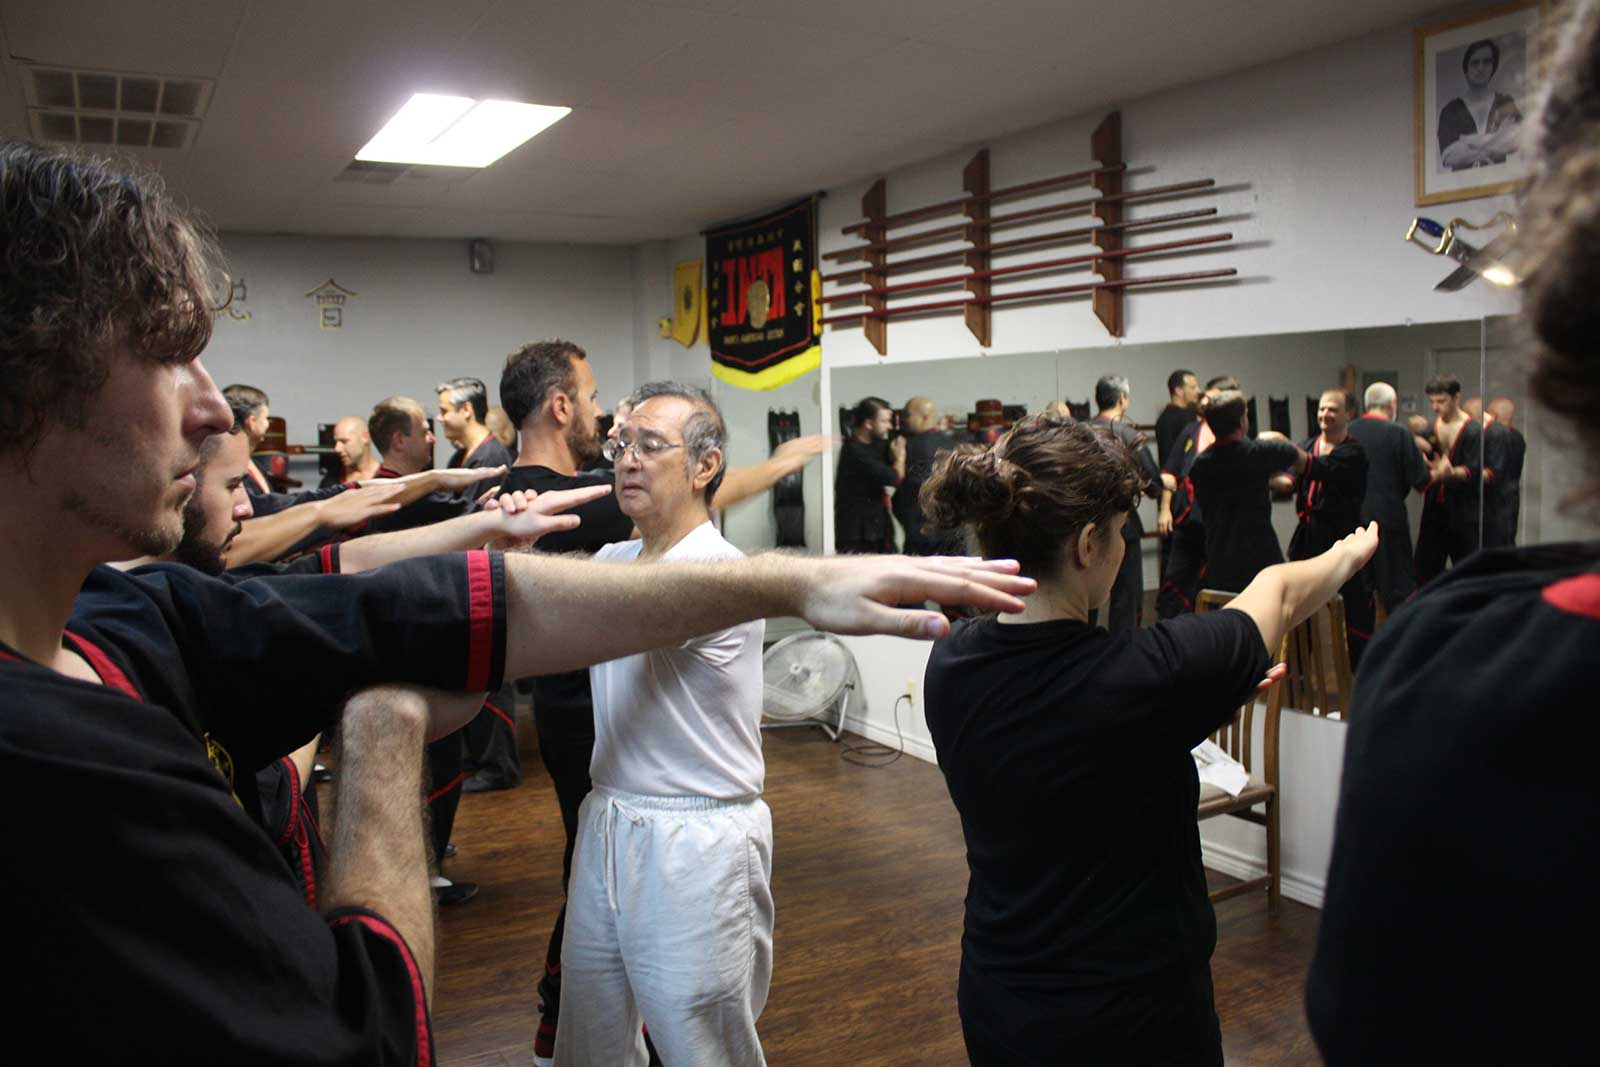 Photo: Great Grandmaster Leung Ting correcting instructors on the Biu Tze (thrusting fingers) form in San Antonio, Texas